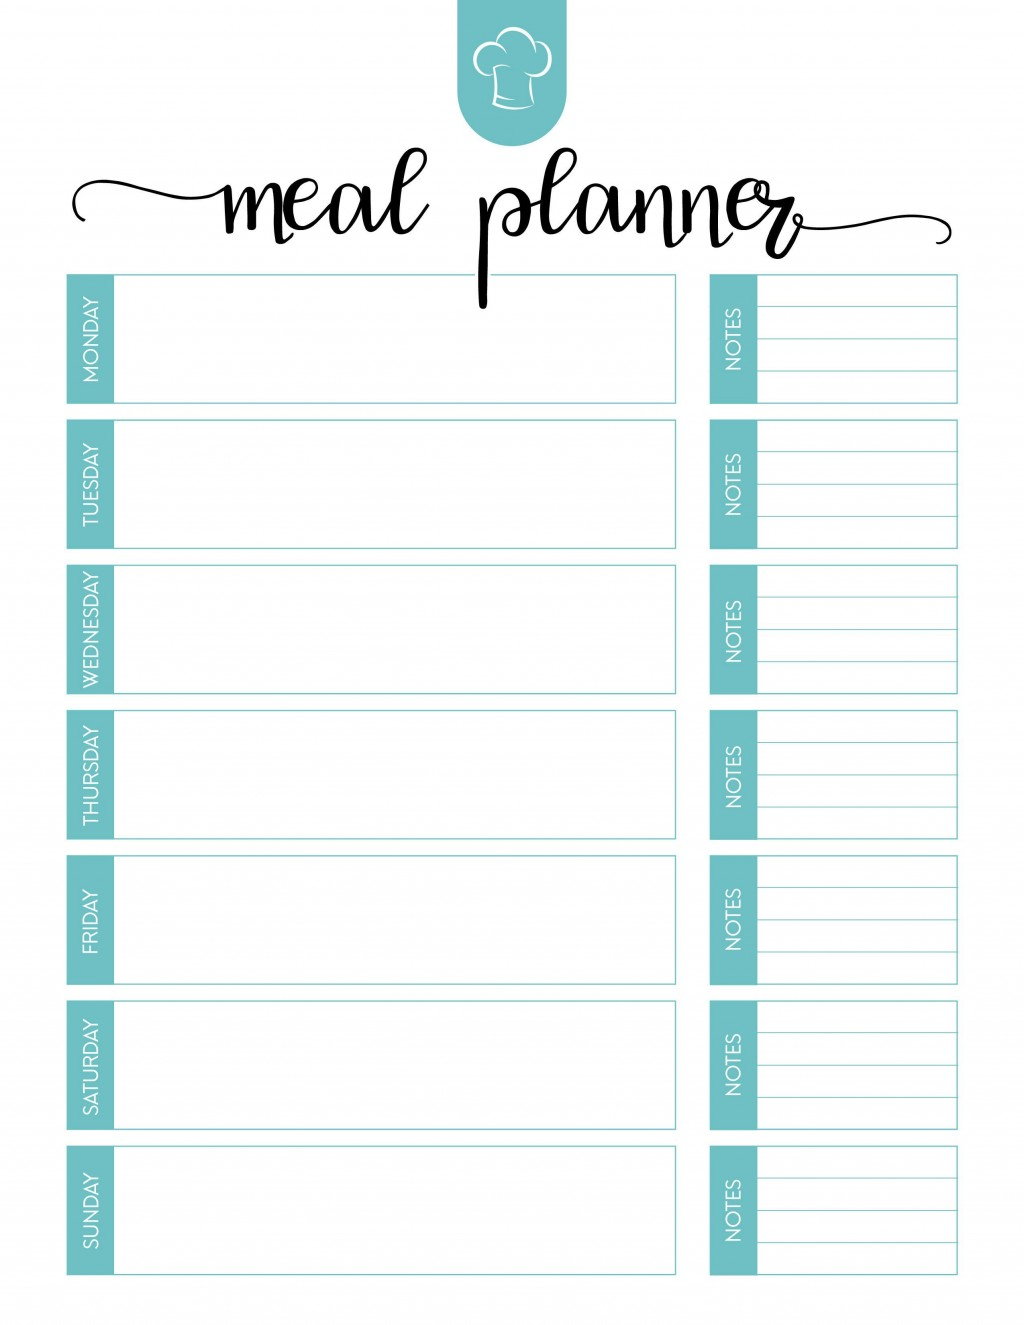 006 Fearsome 2 Week Meal Plan Printable Inspiration Large